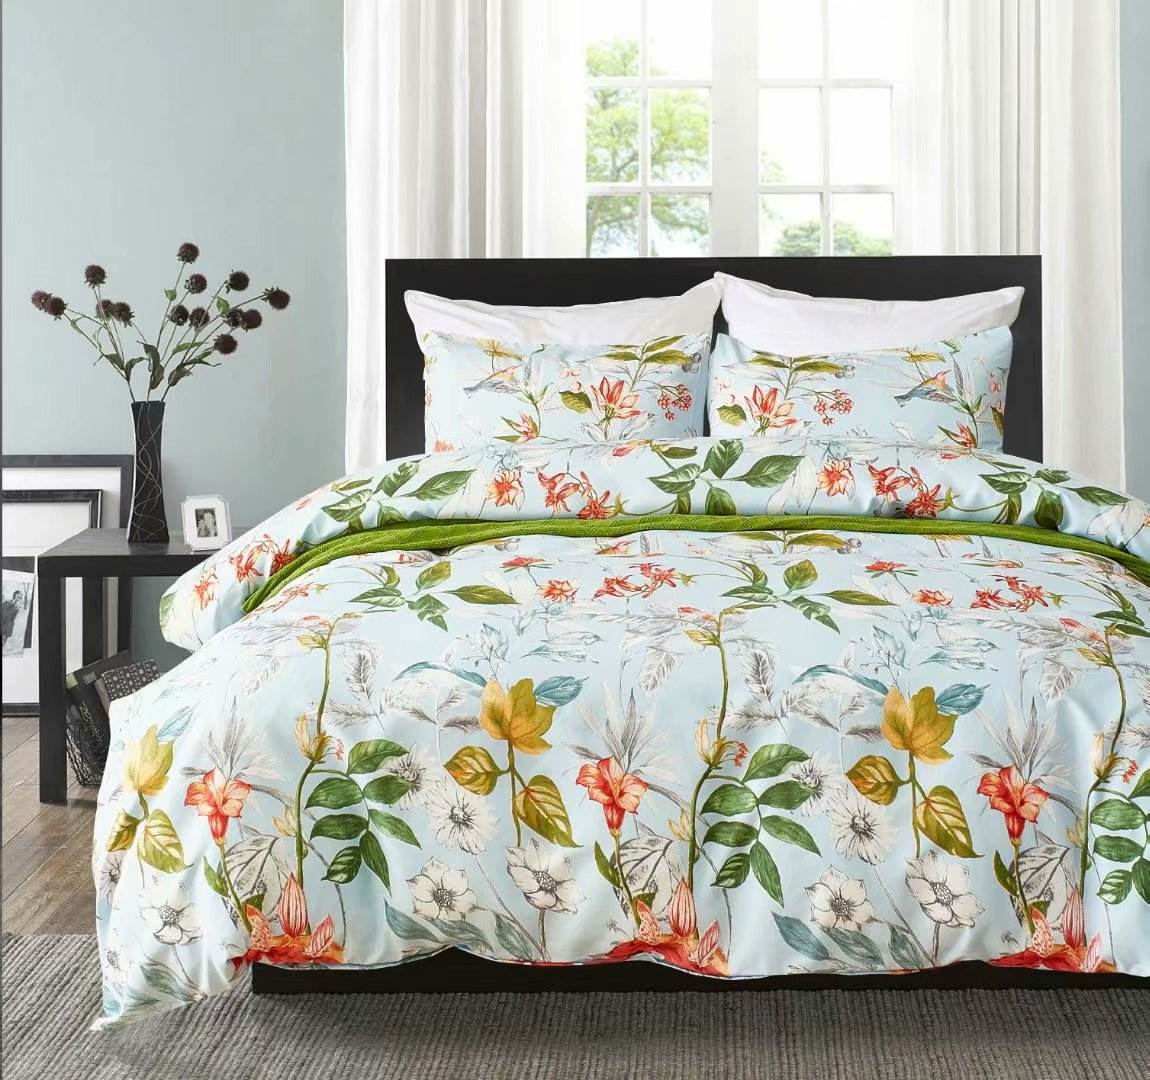 Luxury Comforter with pillows, Disperse Printed Queen/King Size Bed Set, 100% Polyester Microfiber Duvet Cover bedding.